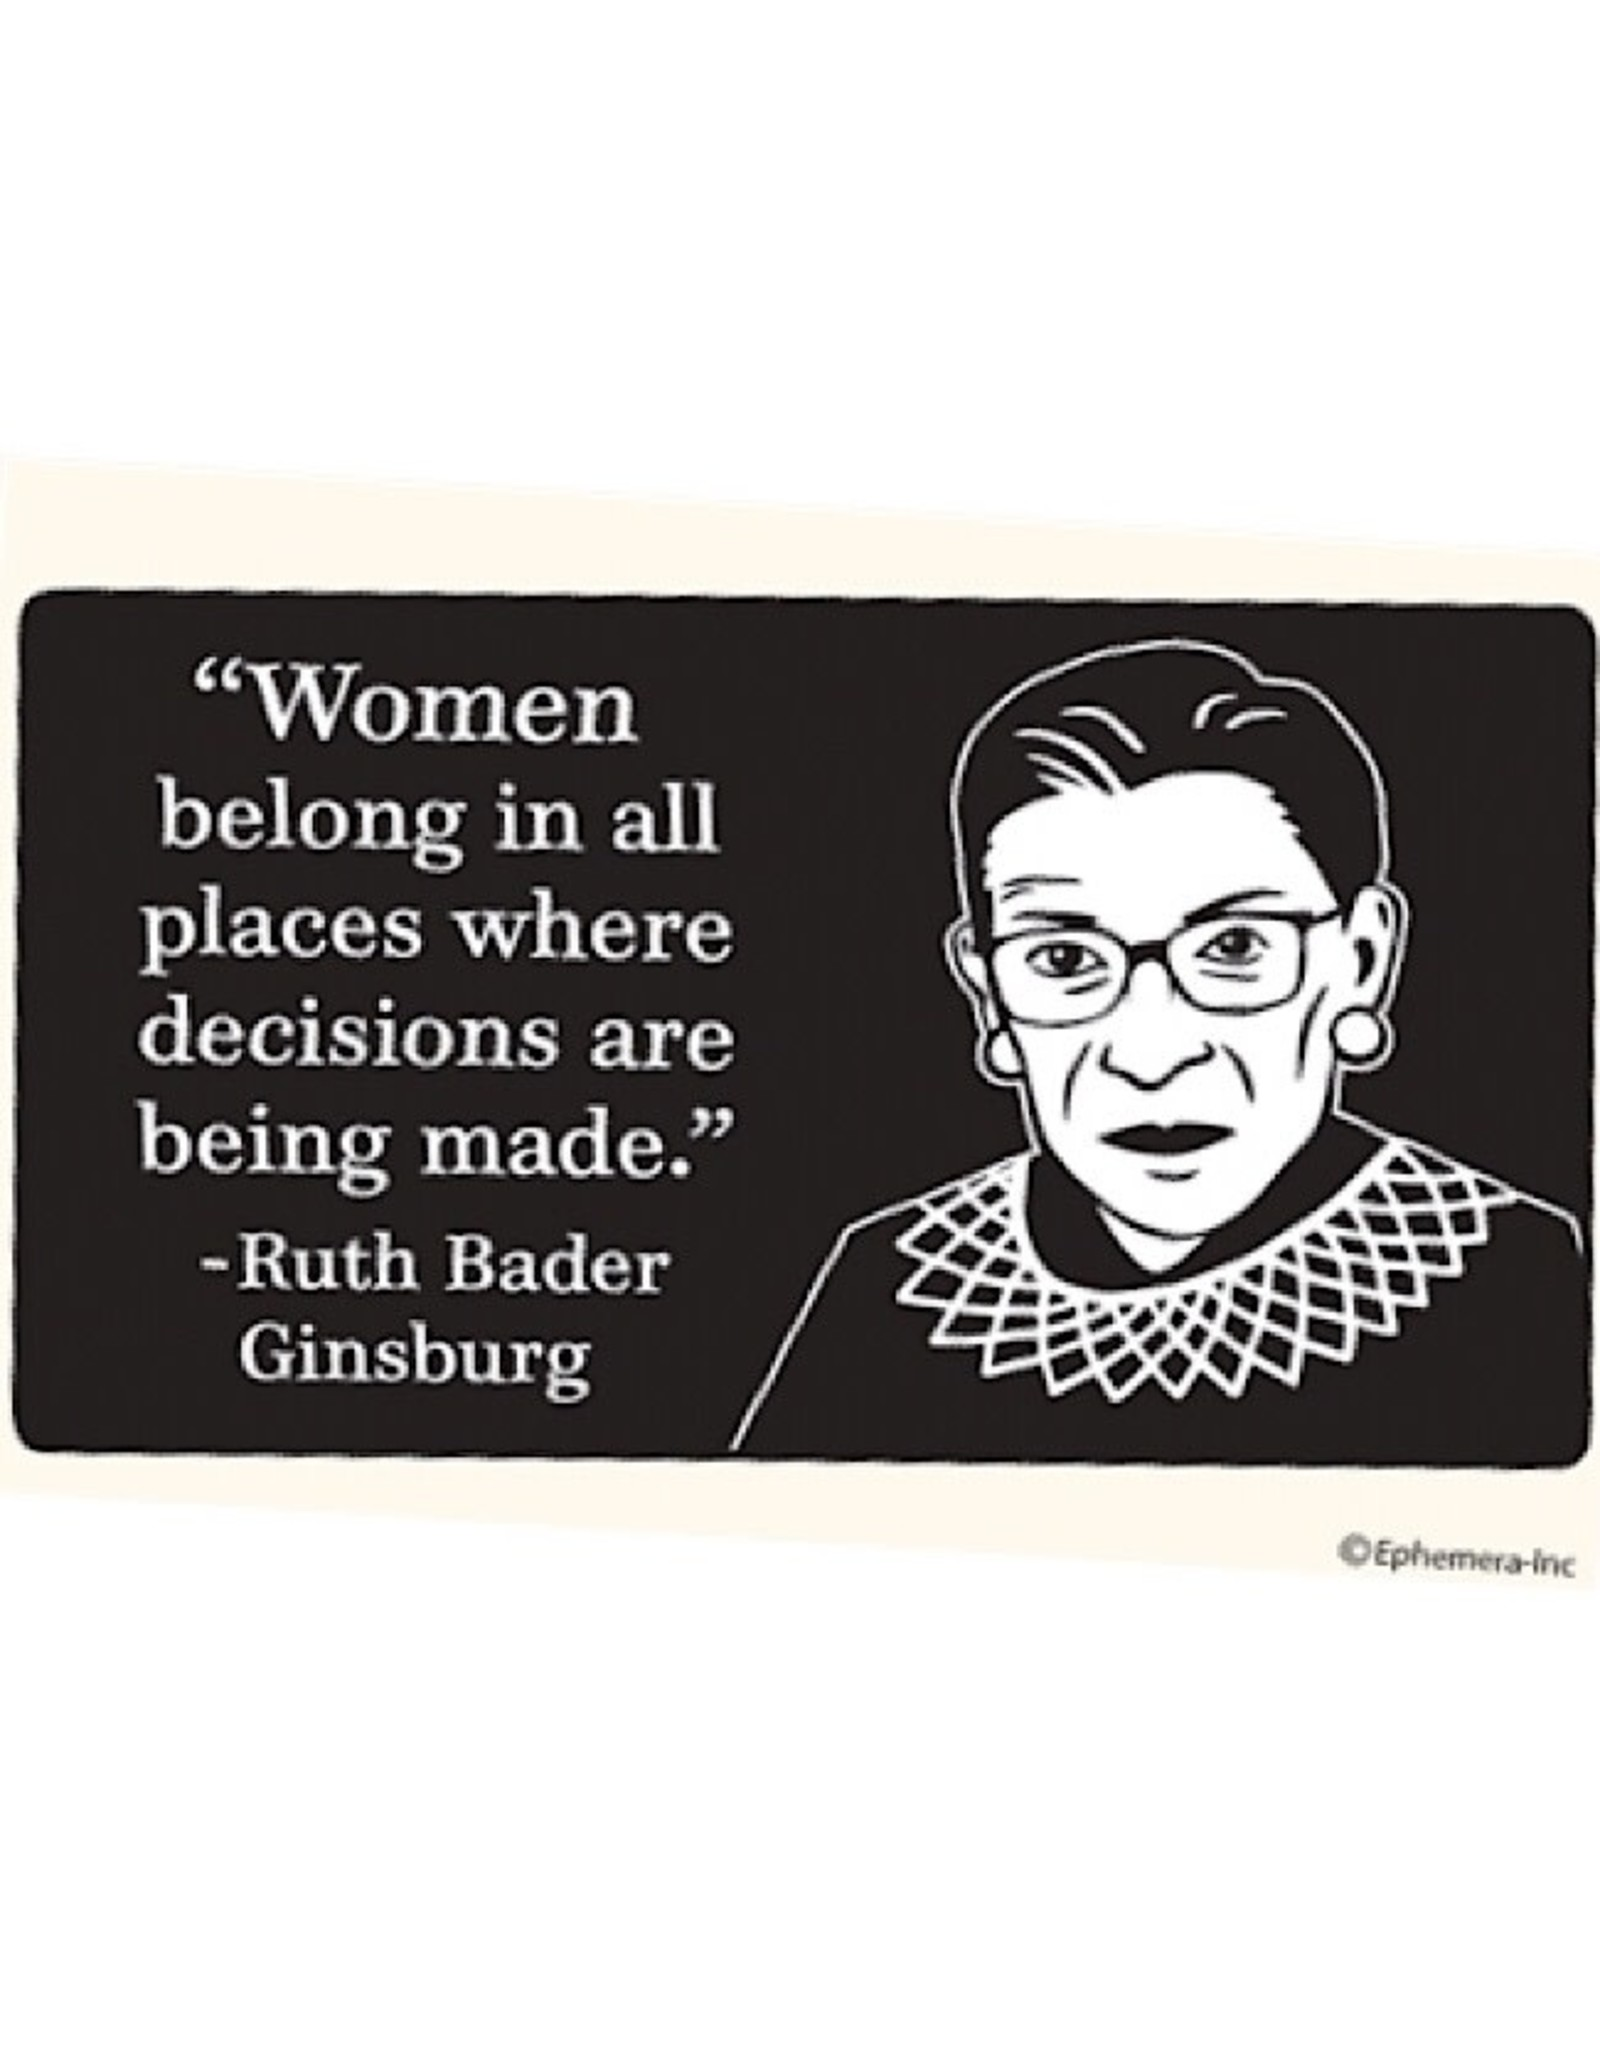 Sticker - Women Belong In All Places Where Decisions Are Being Made - Ruthe Bader Ginsburg